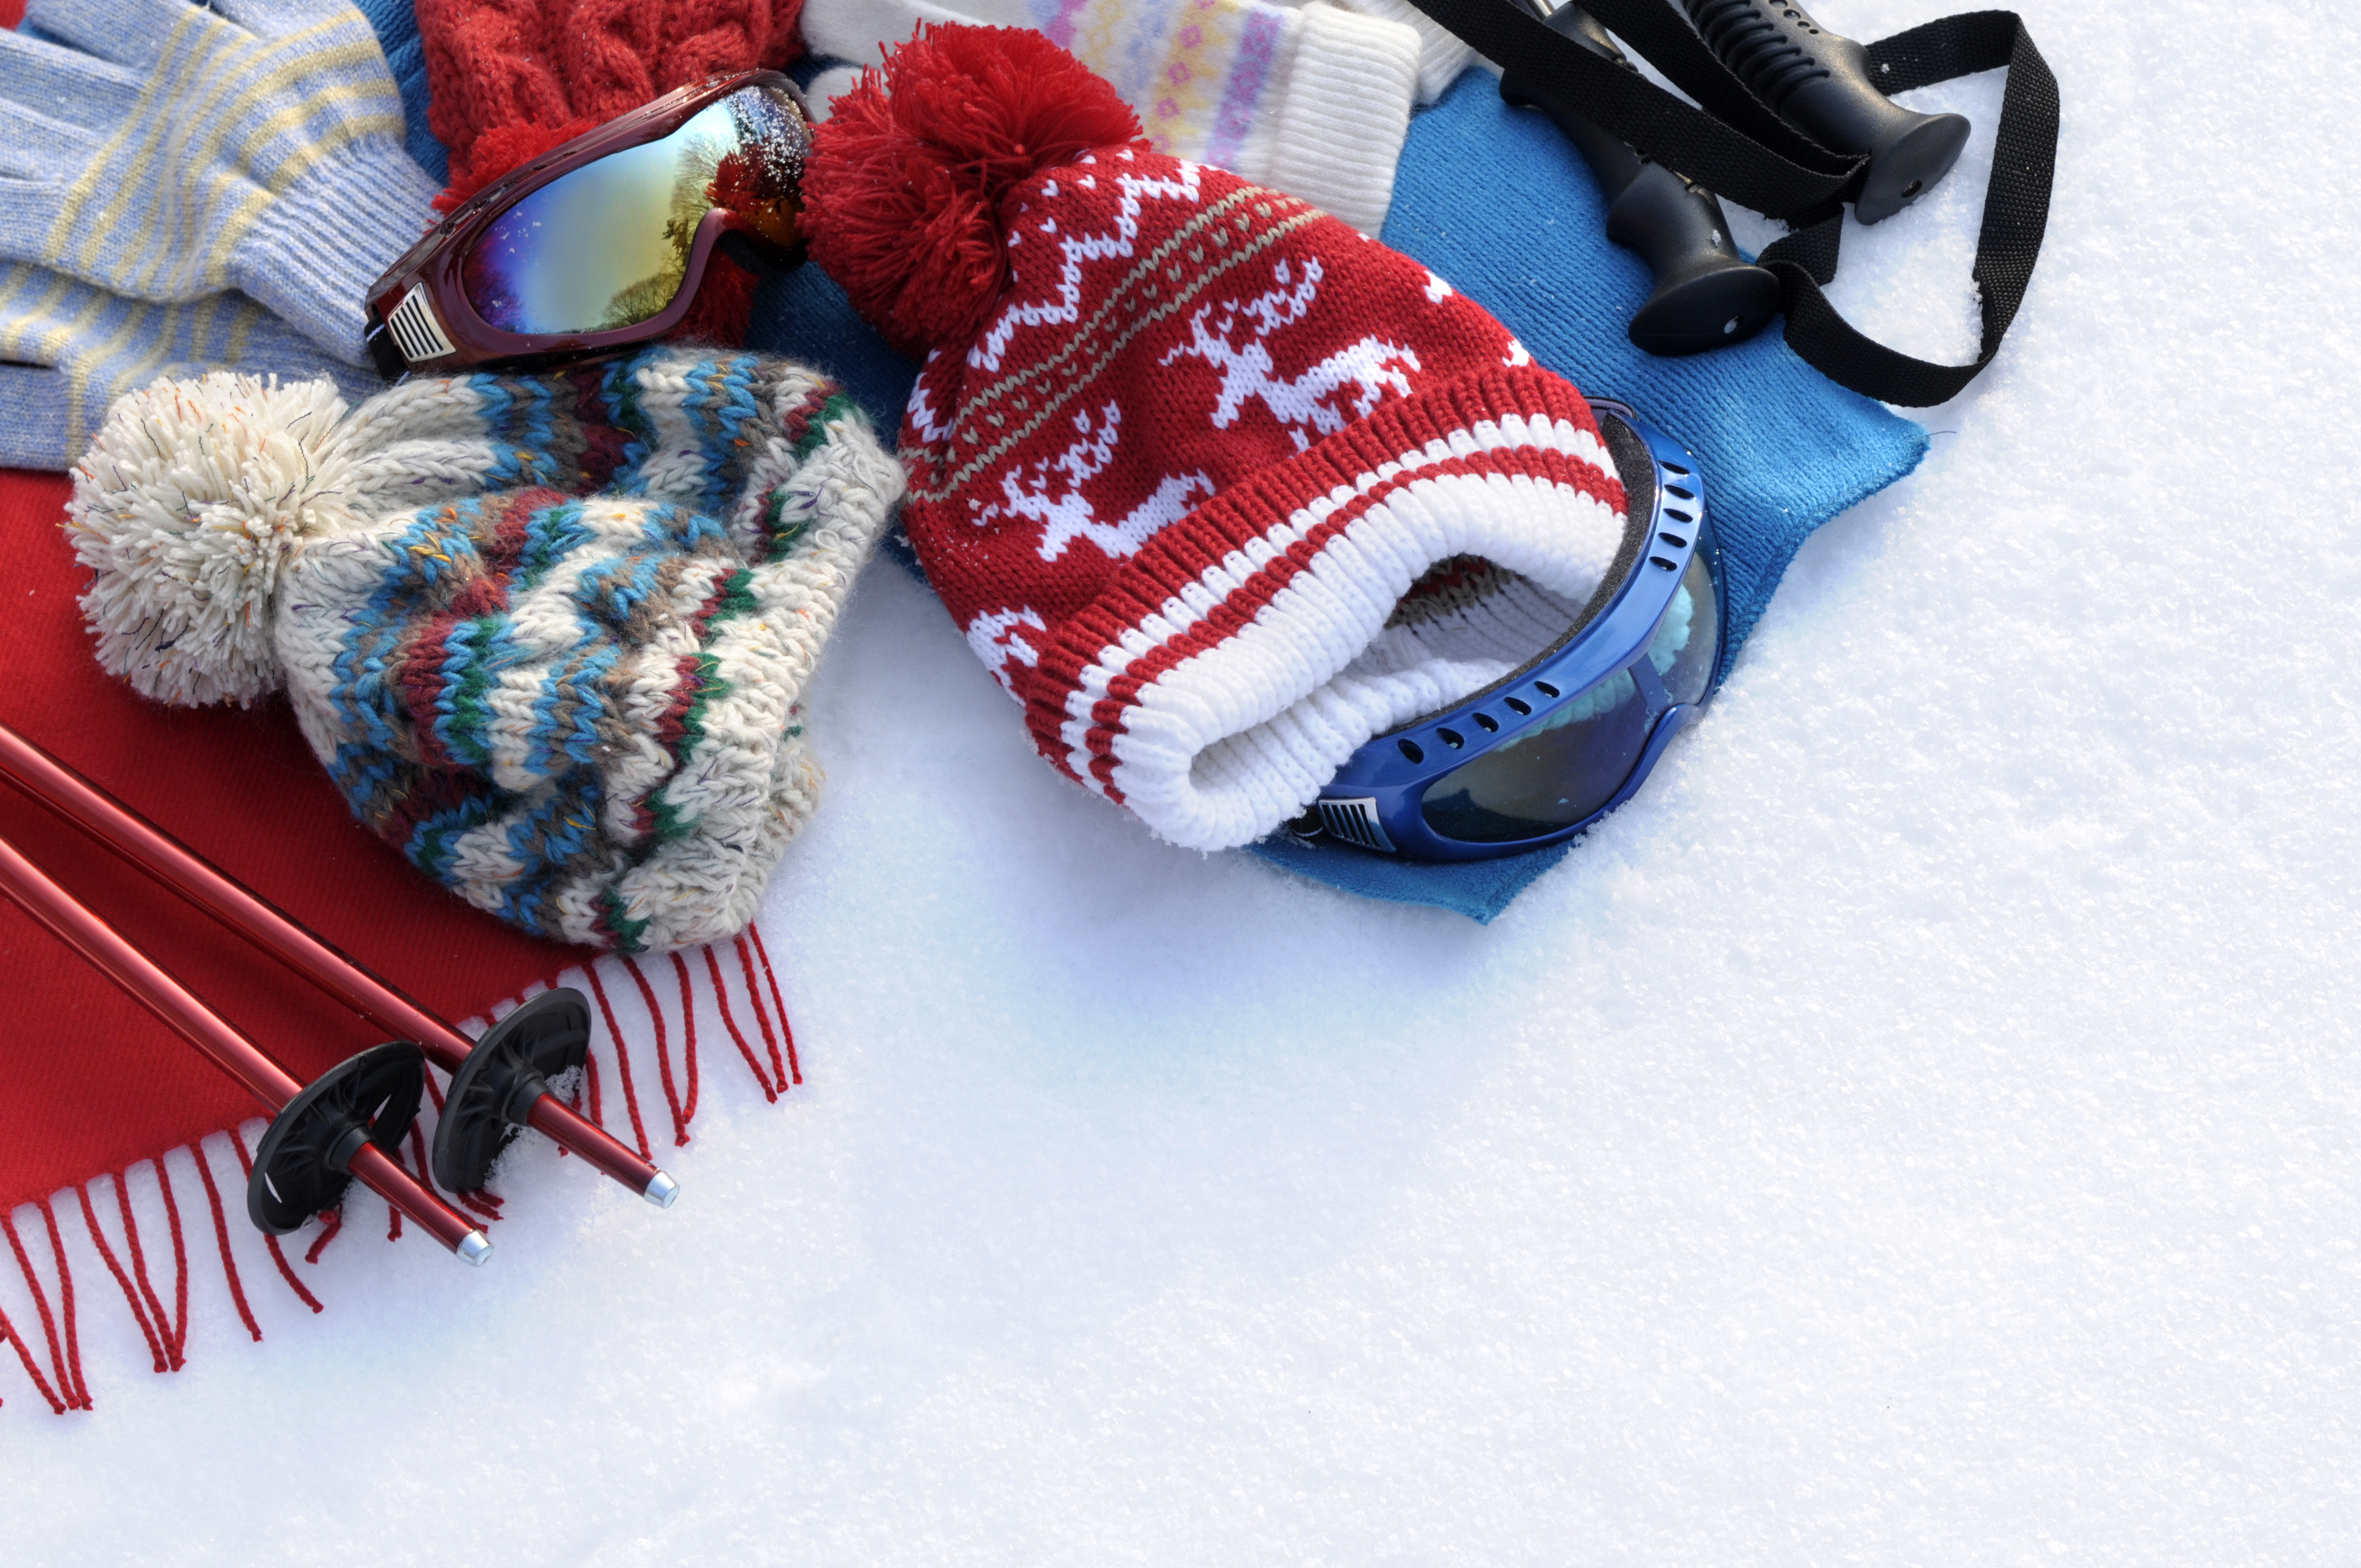 Winter sports background with ski poles, goggles, hats and gloves with copyspace (picture taken in fresh snow with directional winter sun).